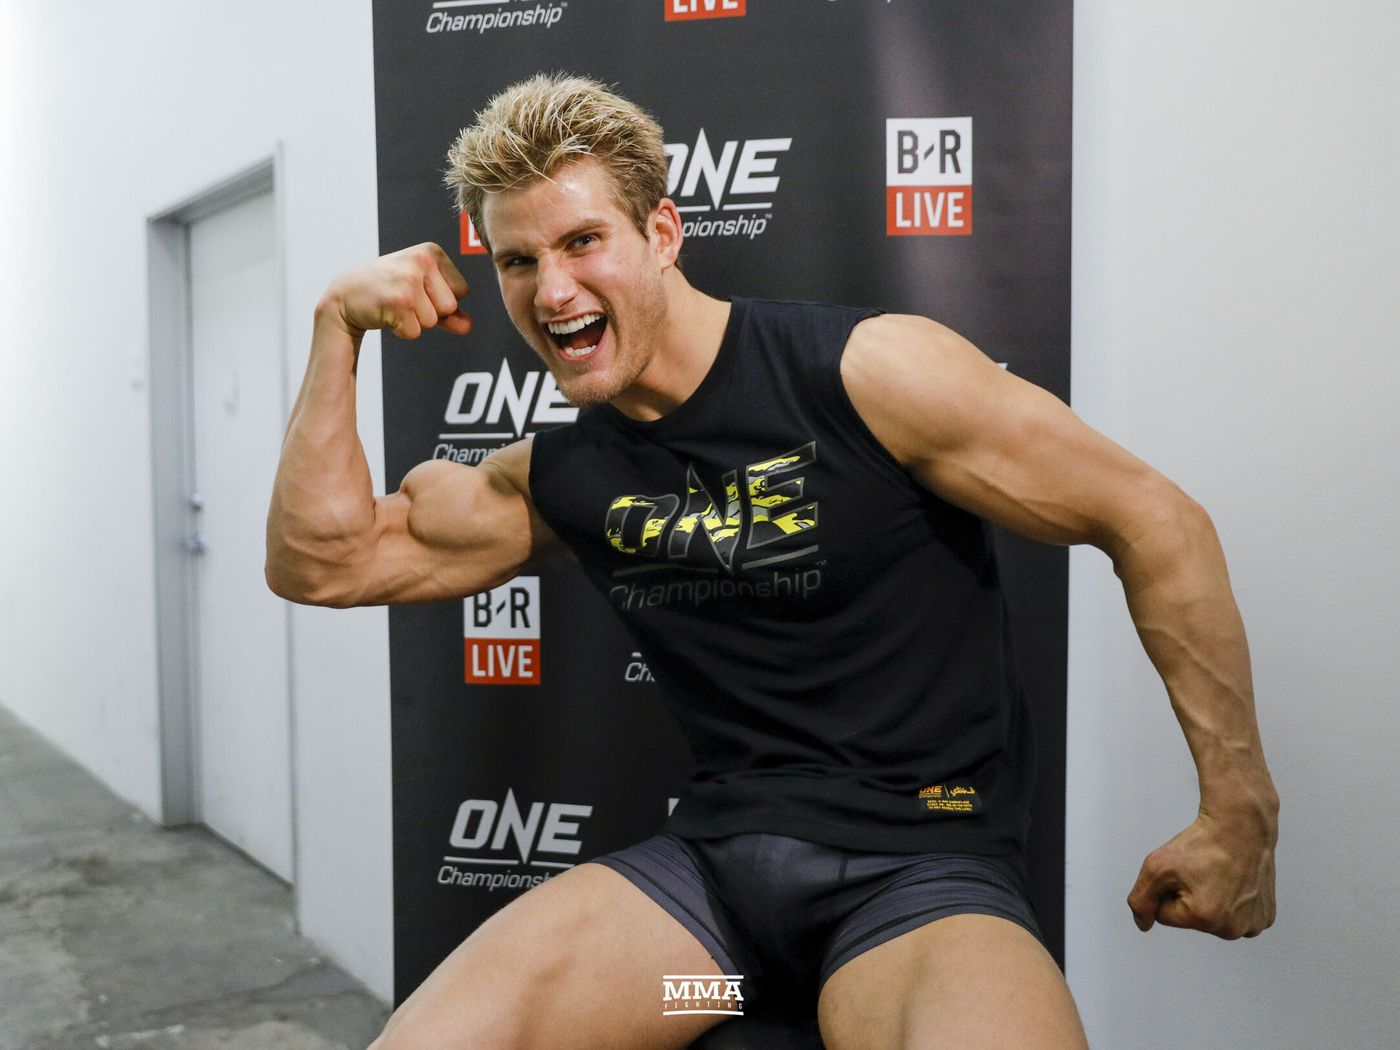 Sage Northcutt vs Shinya Aoki